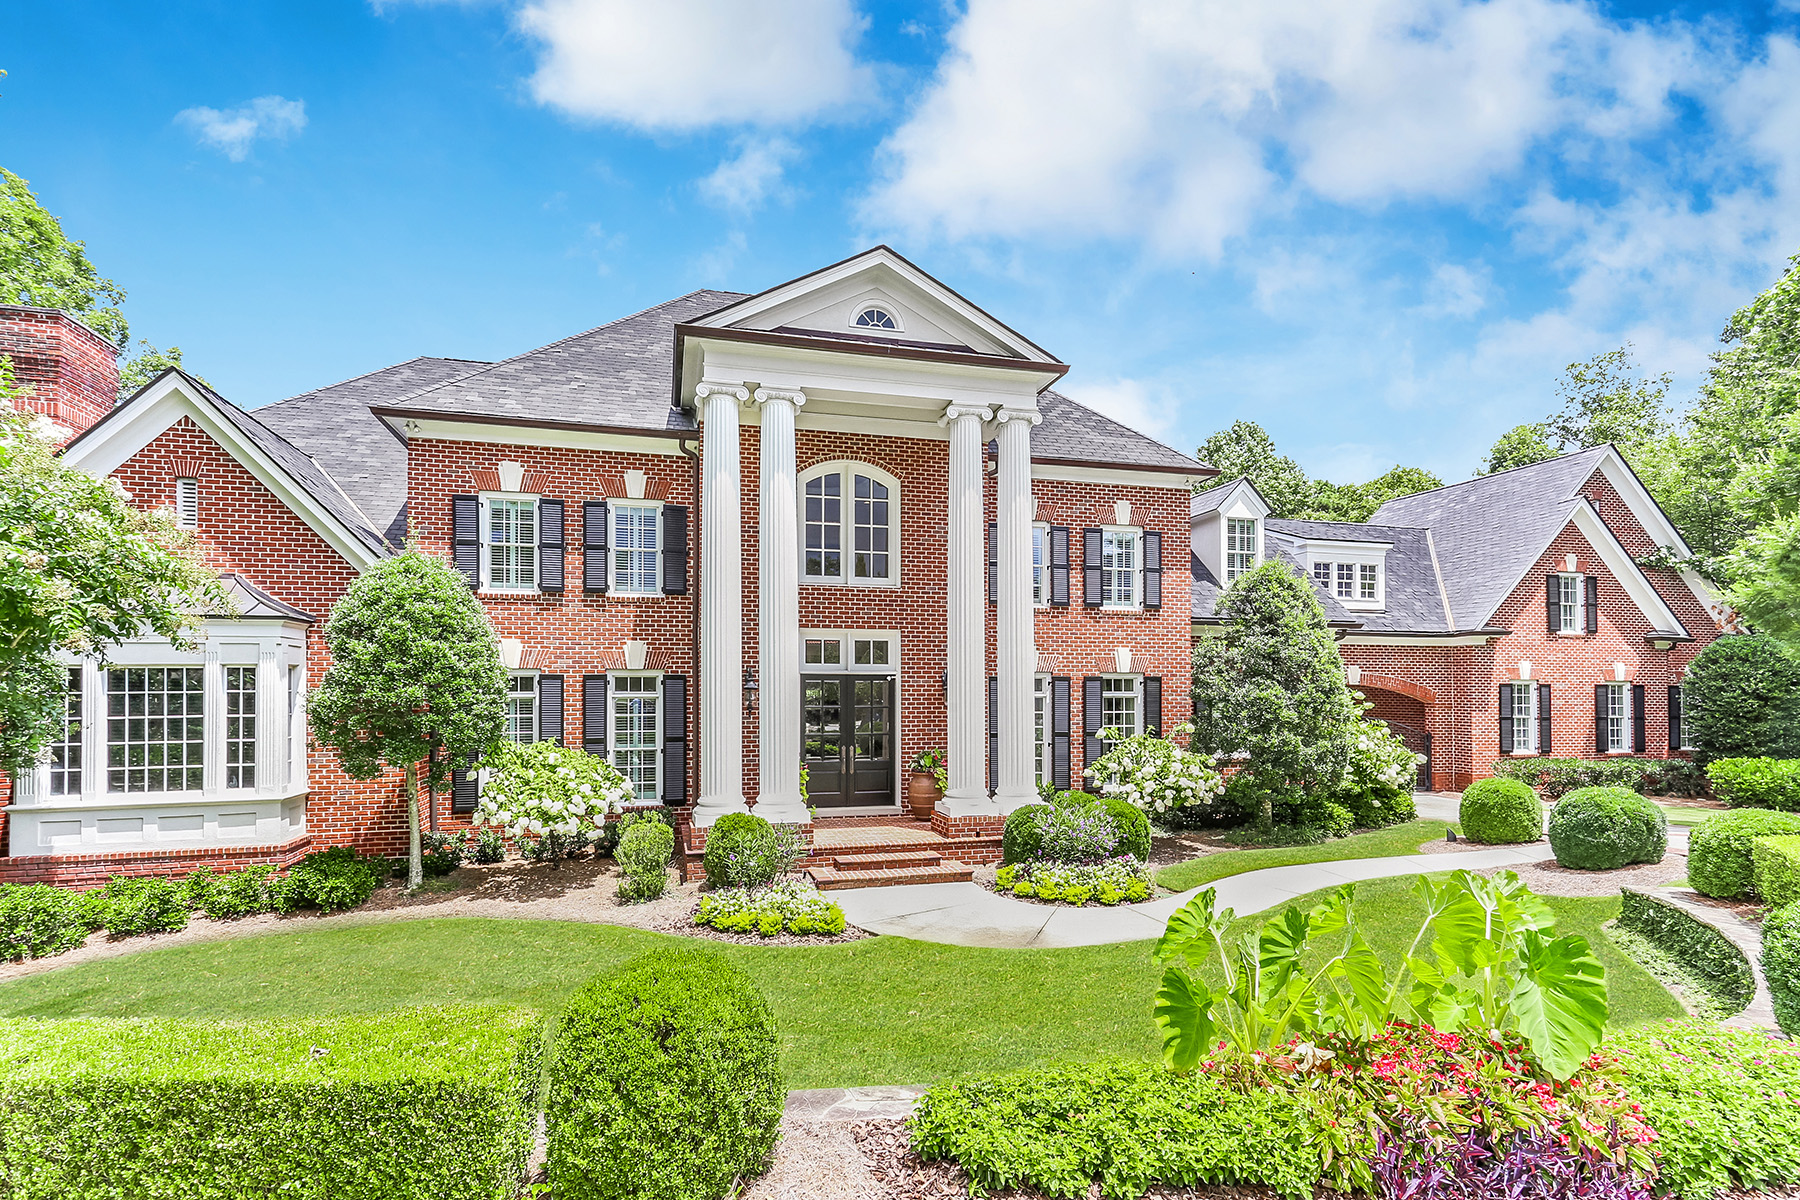 Single Family Homes for Active at Exceptional Private 3.6 Acre Gated Estate Backing To Chattahoochee National Park 374 Citadella Court Johns Creek, Georgia 30022 United States